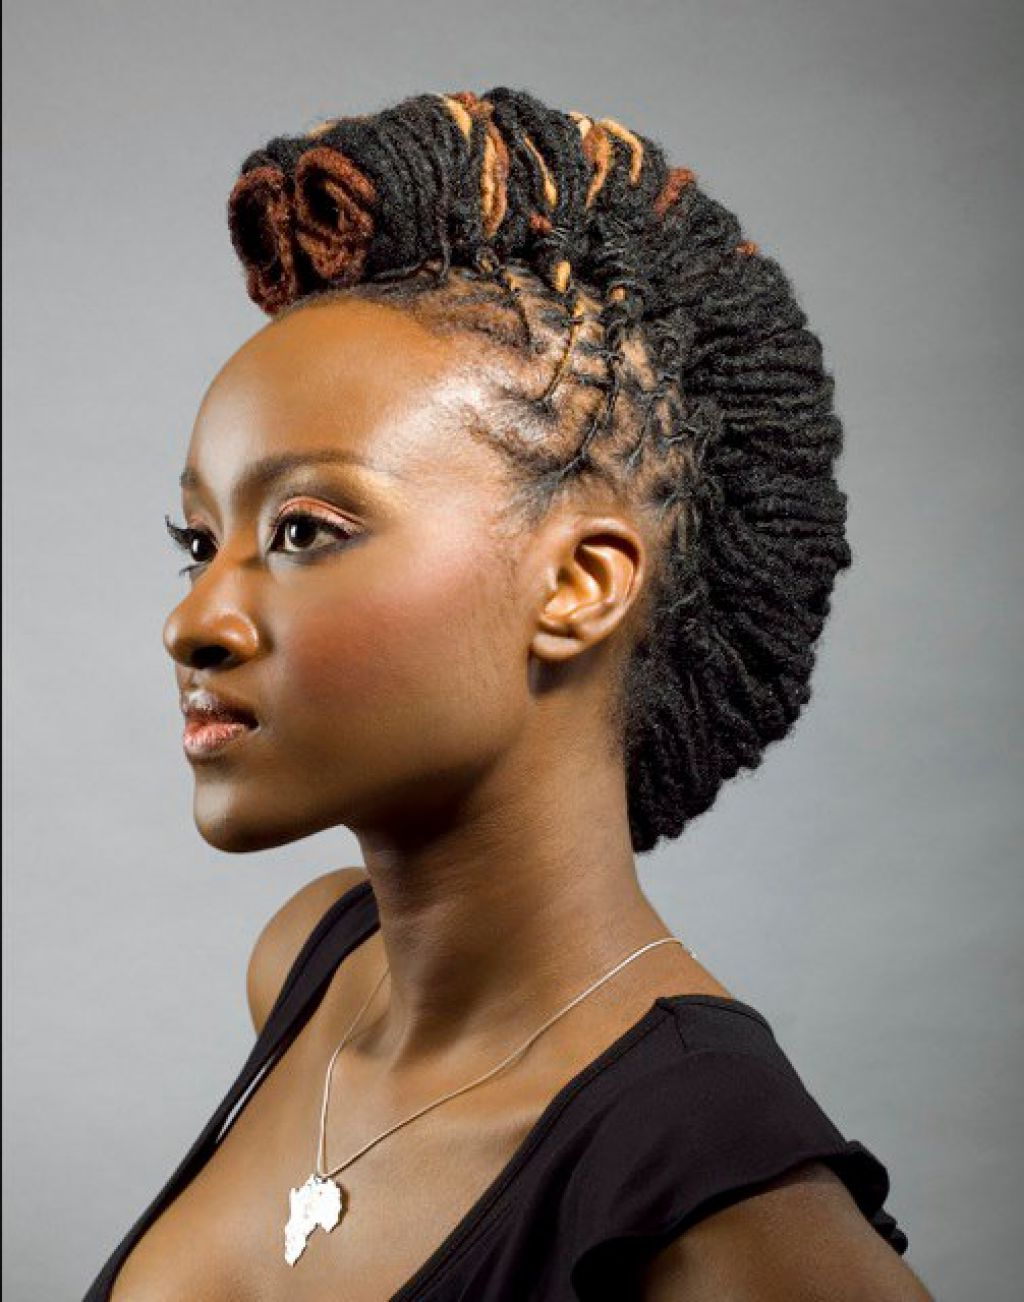 17 Stunning Women With Dreadlocks – African Vibes Magazine With Famous Dreadlocked Mohawk Hairstyles For Women (View 17 of 20)